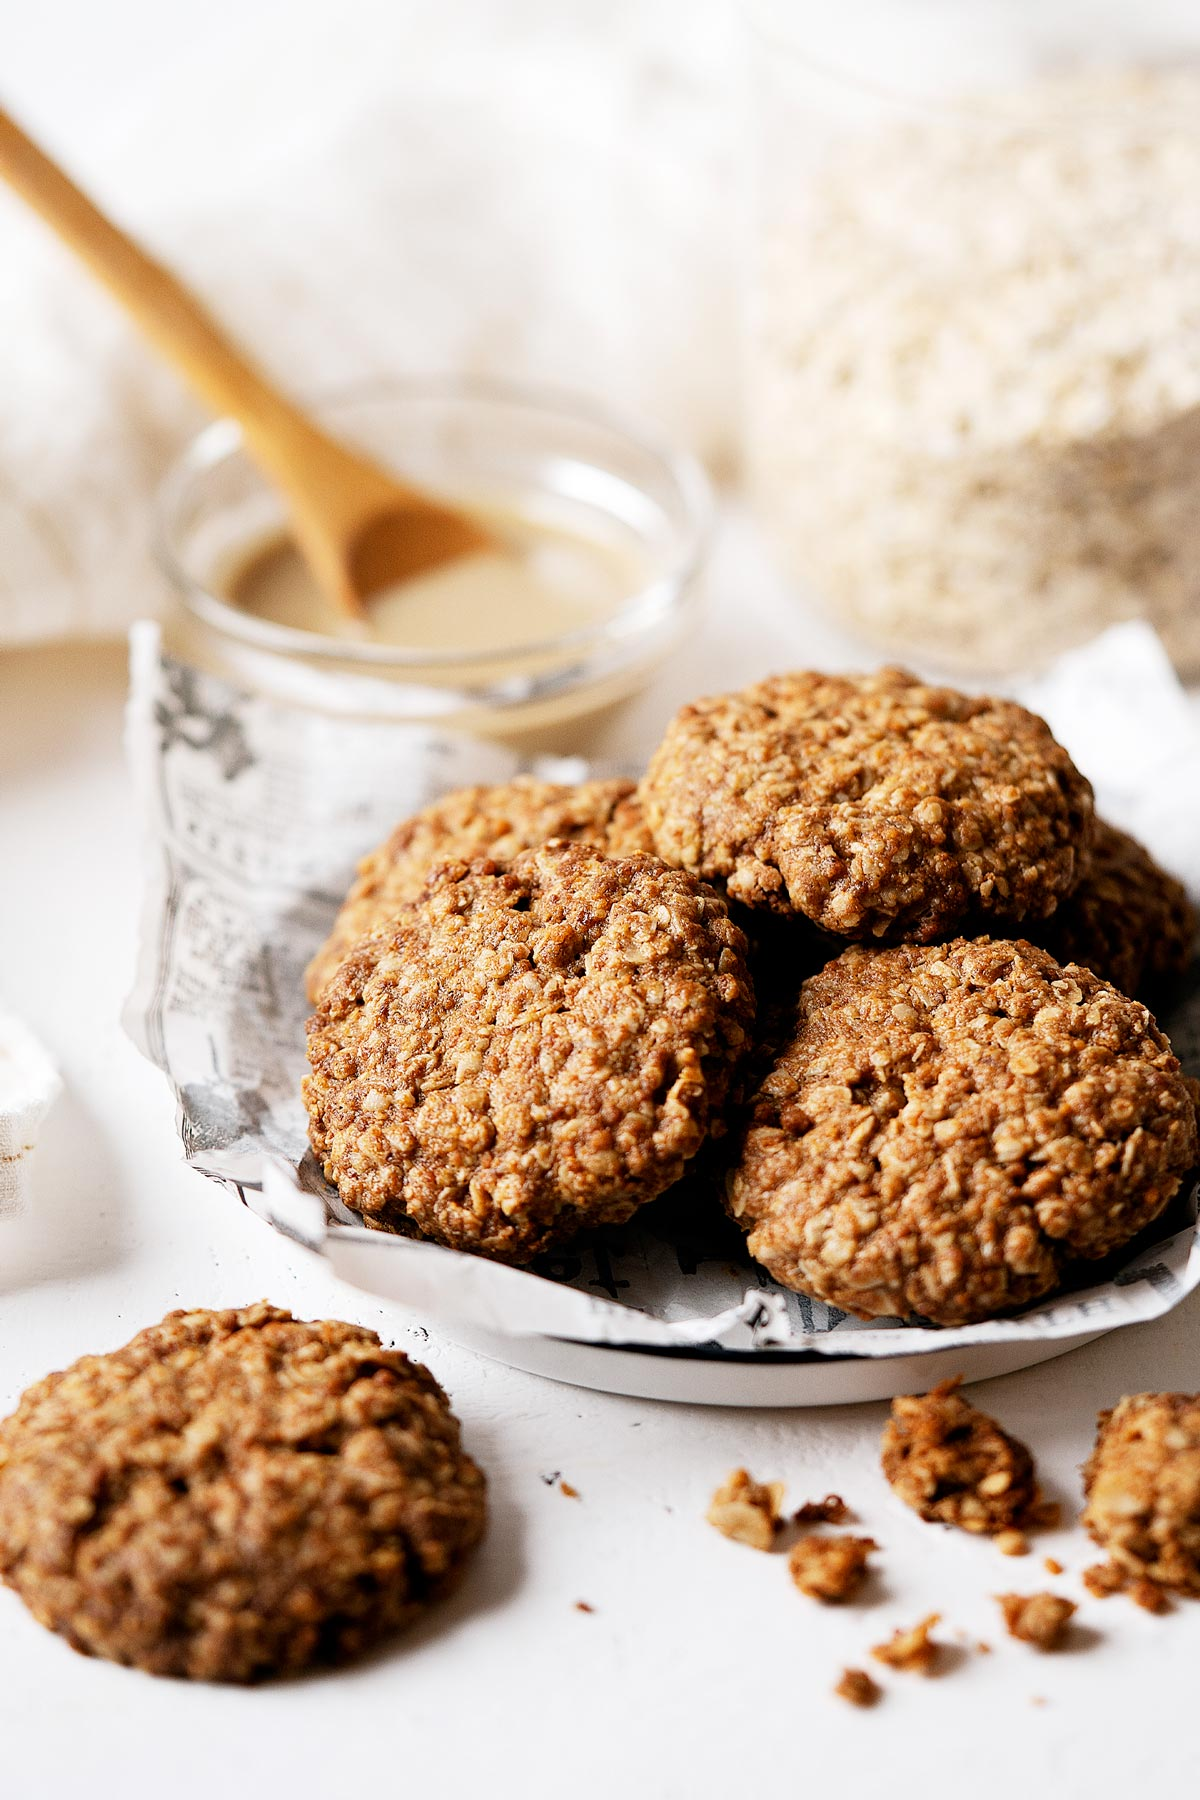 Some healthy tahini cookies on a plate with broken ones on the side